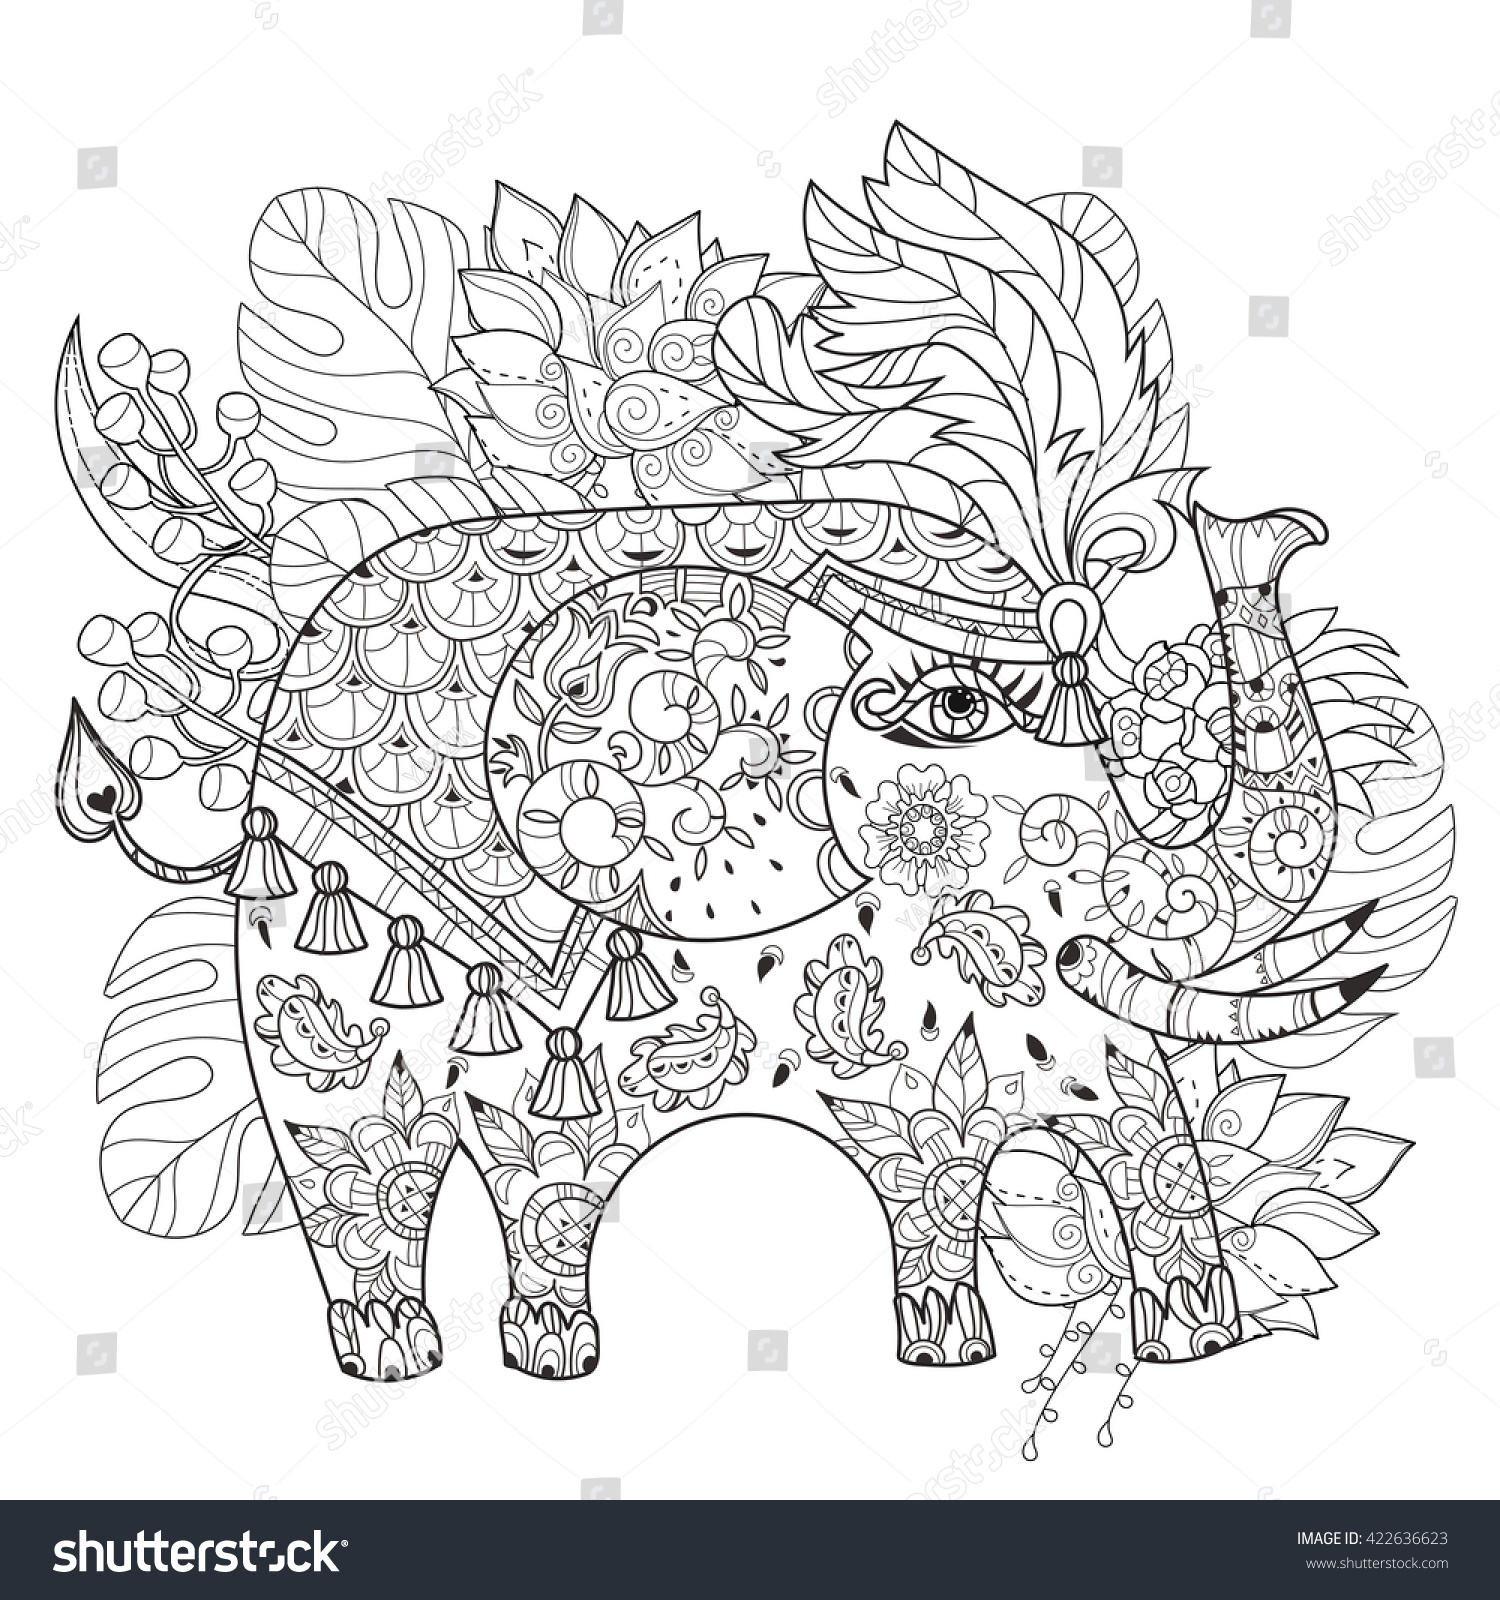 Hand Drawn Outline Circus Elephant Doodle Stock Vector